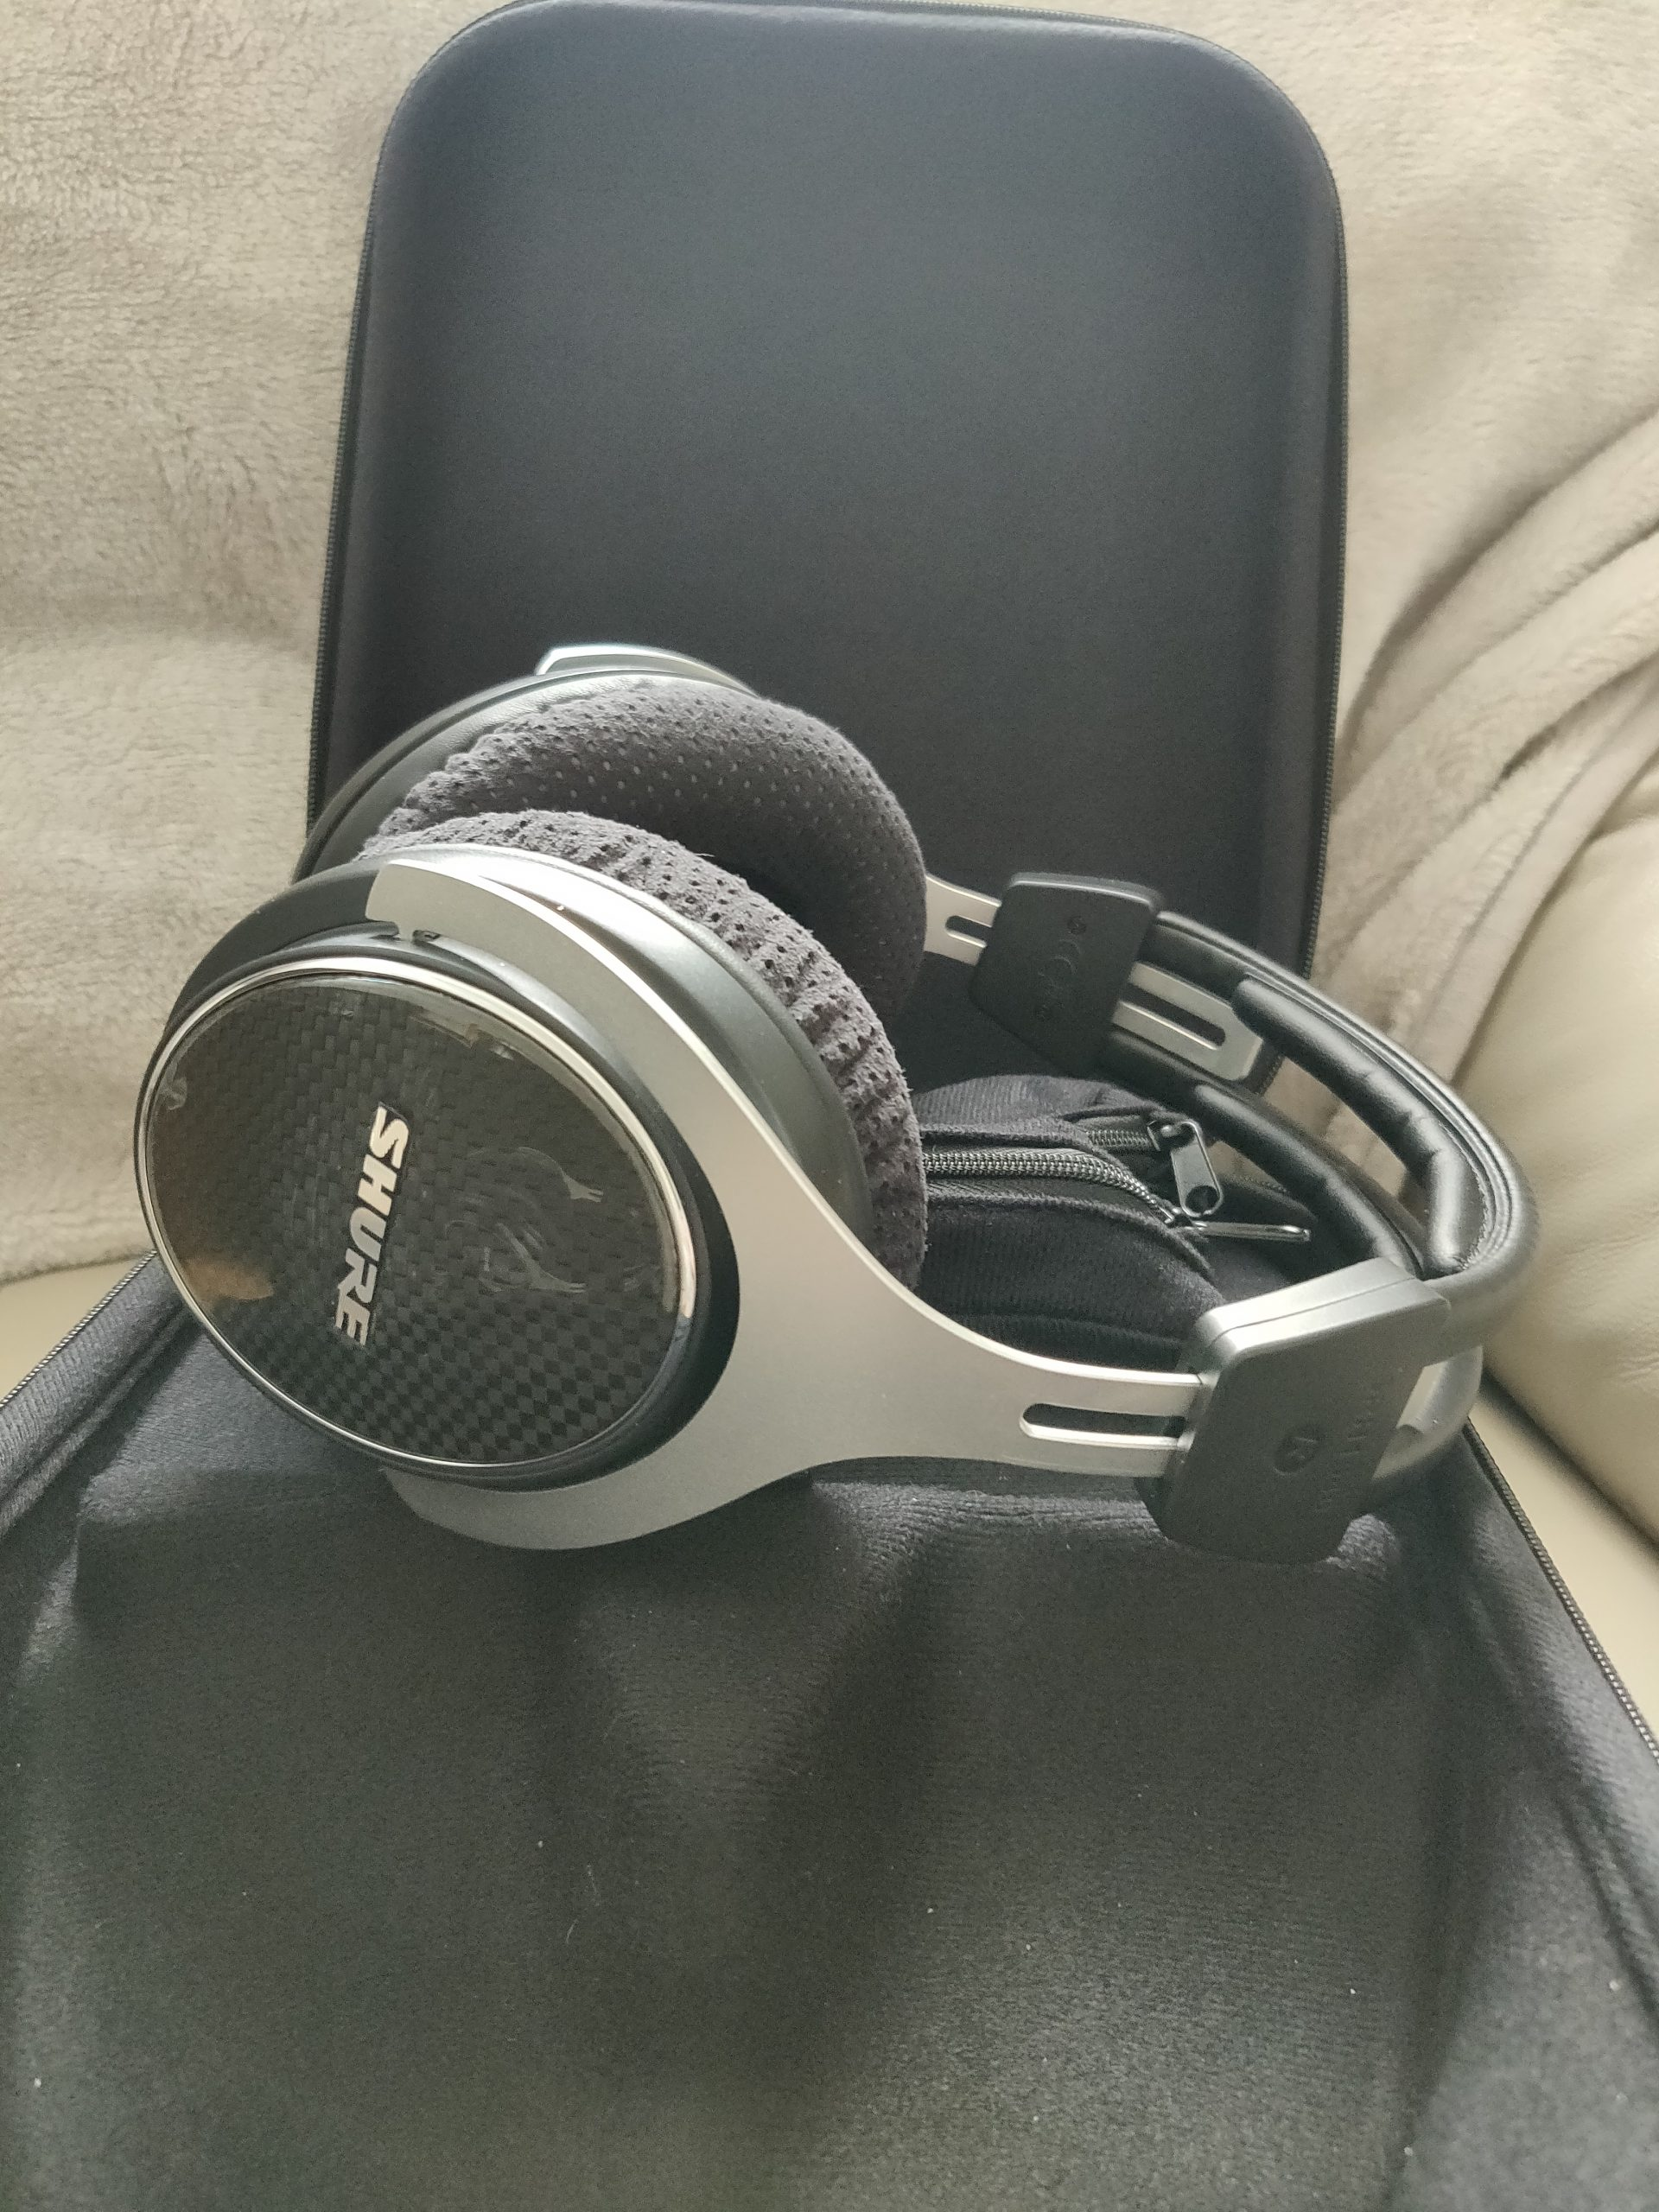 Shure SRH1540 Headphones Review